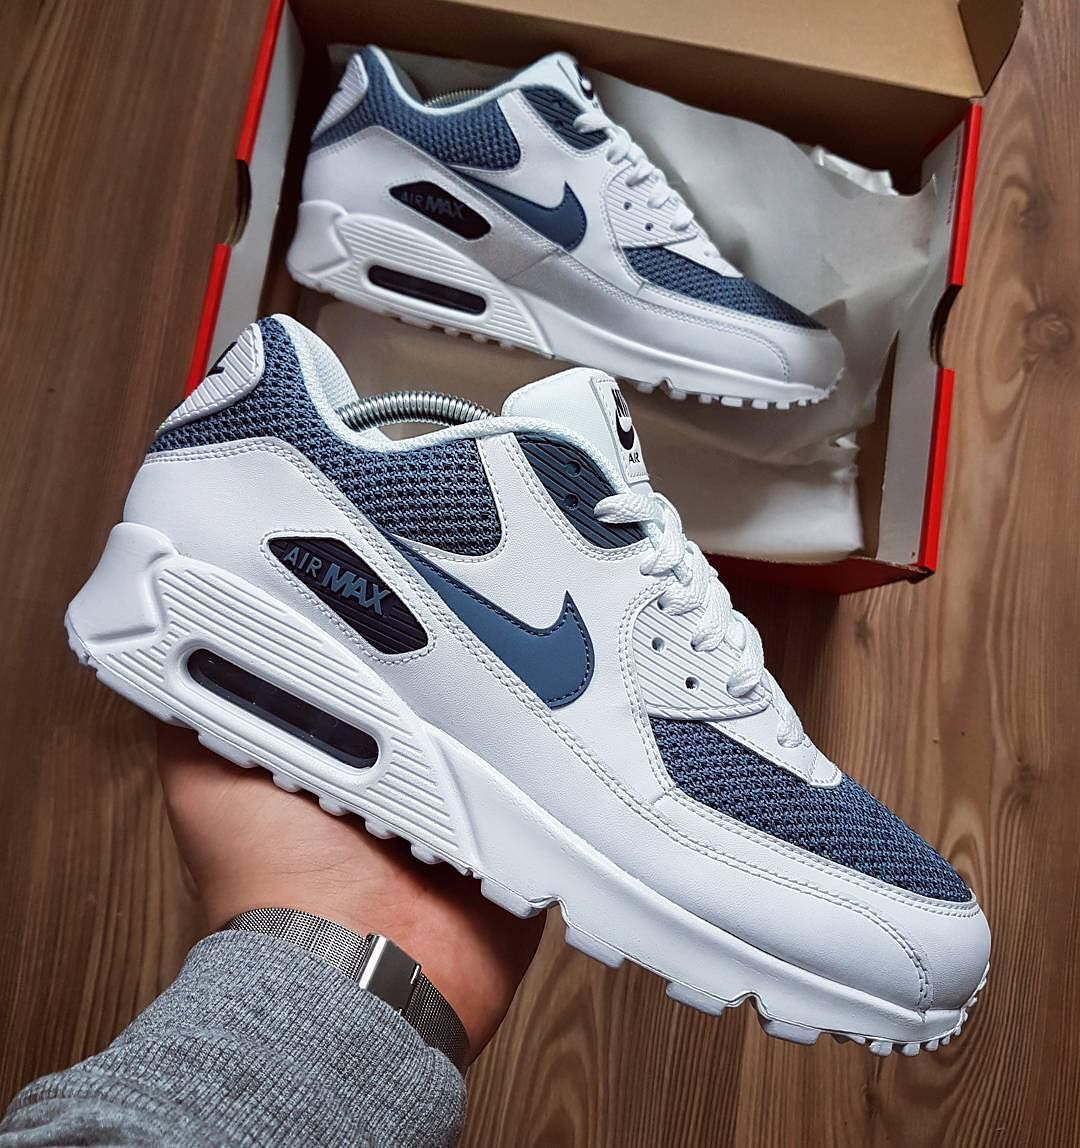 16 8k Likes 114 Comments Airmaxalways Airmaxalways On Instagram Nike Airmax 90 X Premium Thes Sneakers Fashion Nike Shoes Air Force Custom Nike Shoes